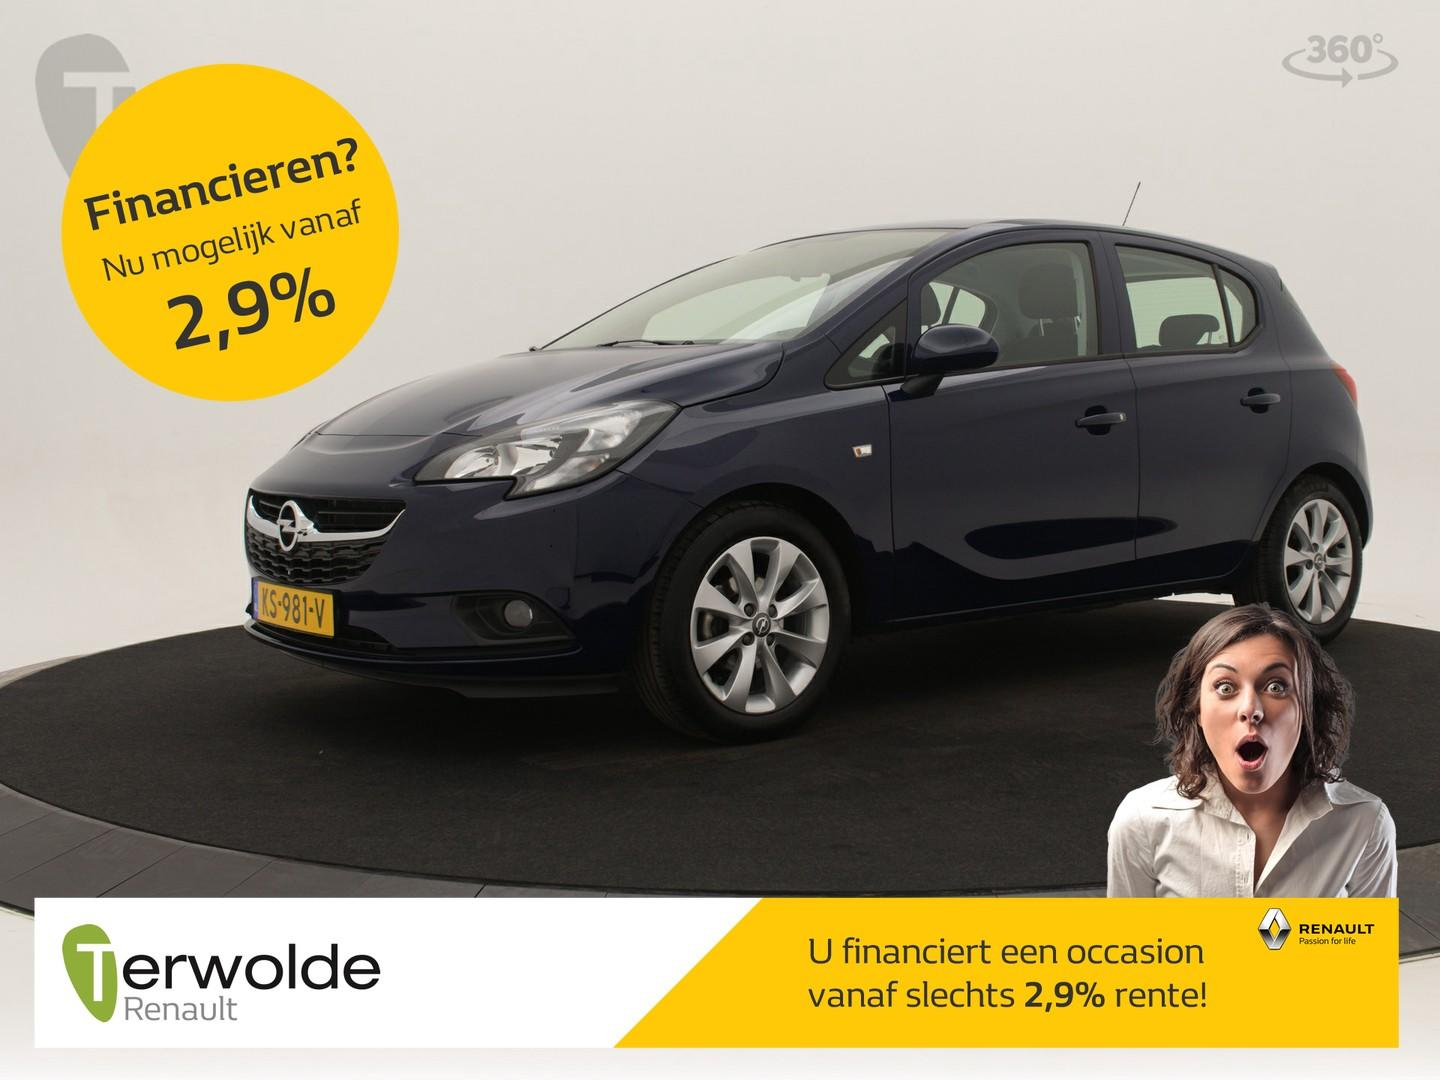 Opel Corsa 1.4 edition 90 pk automaat